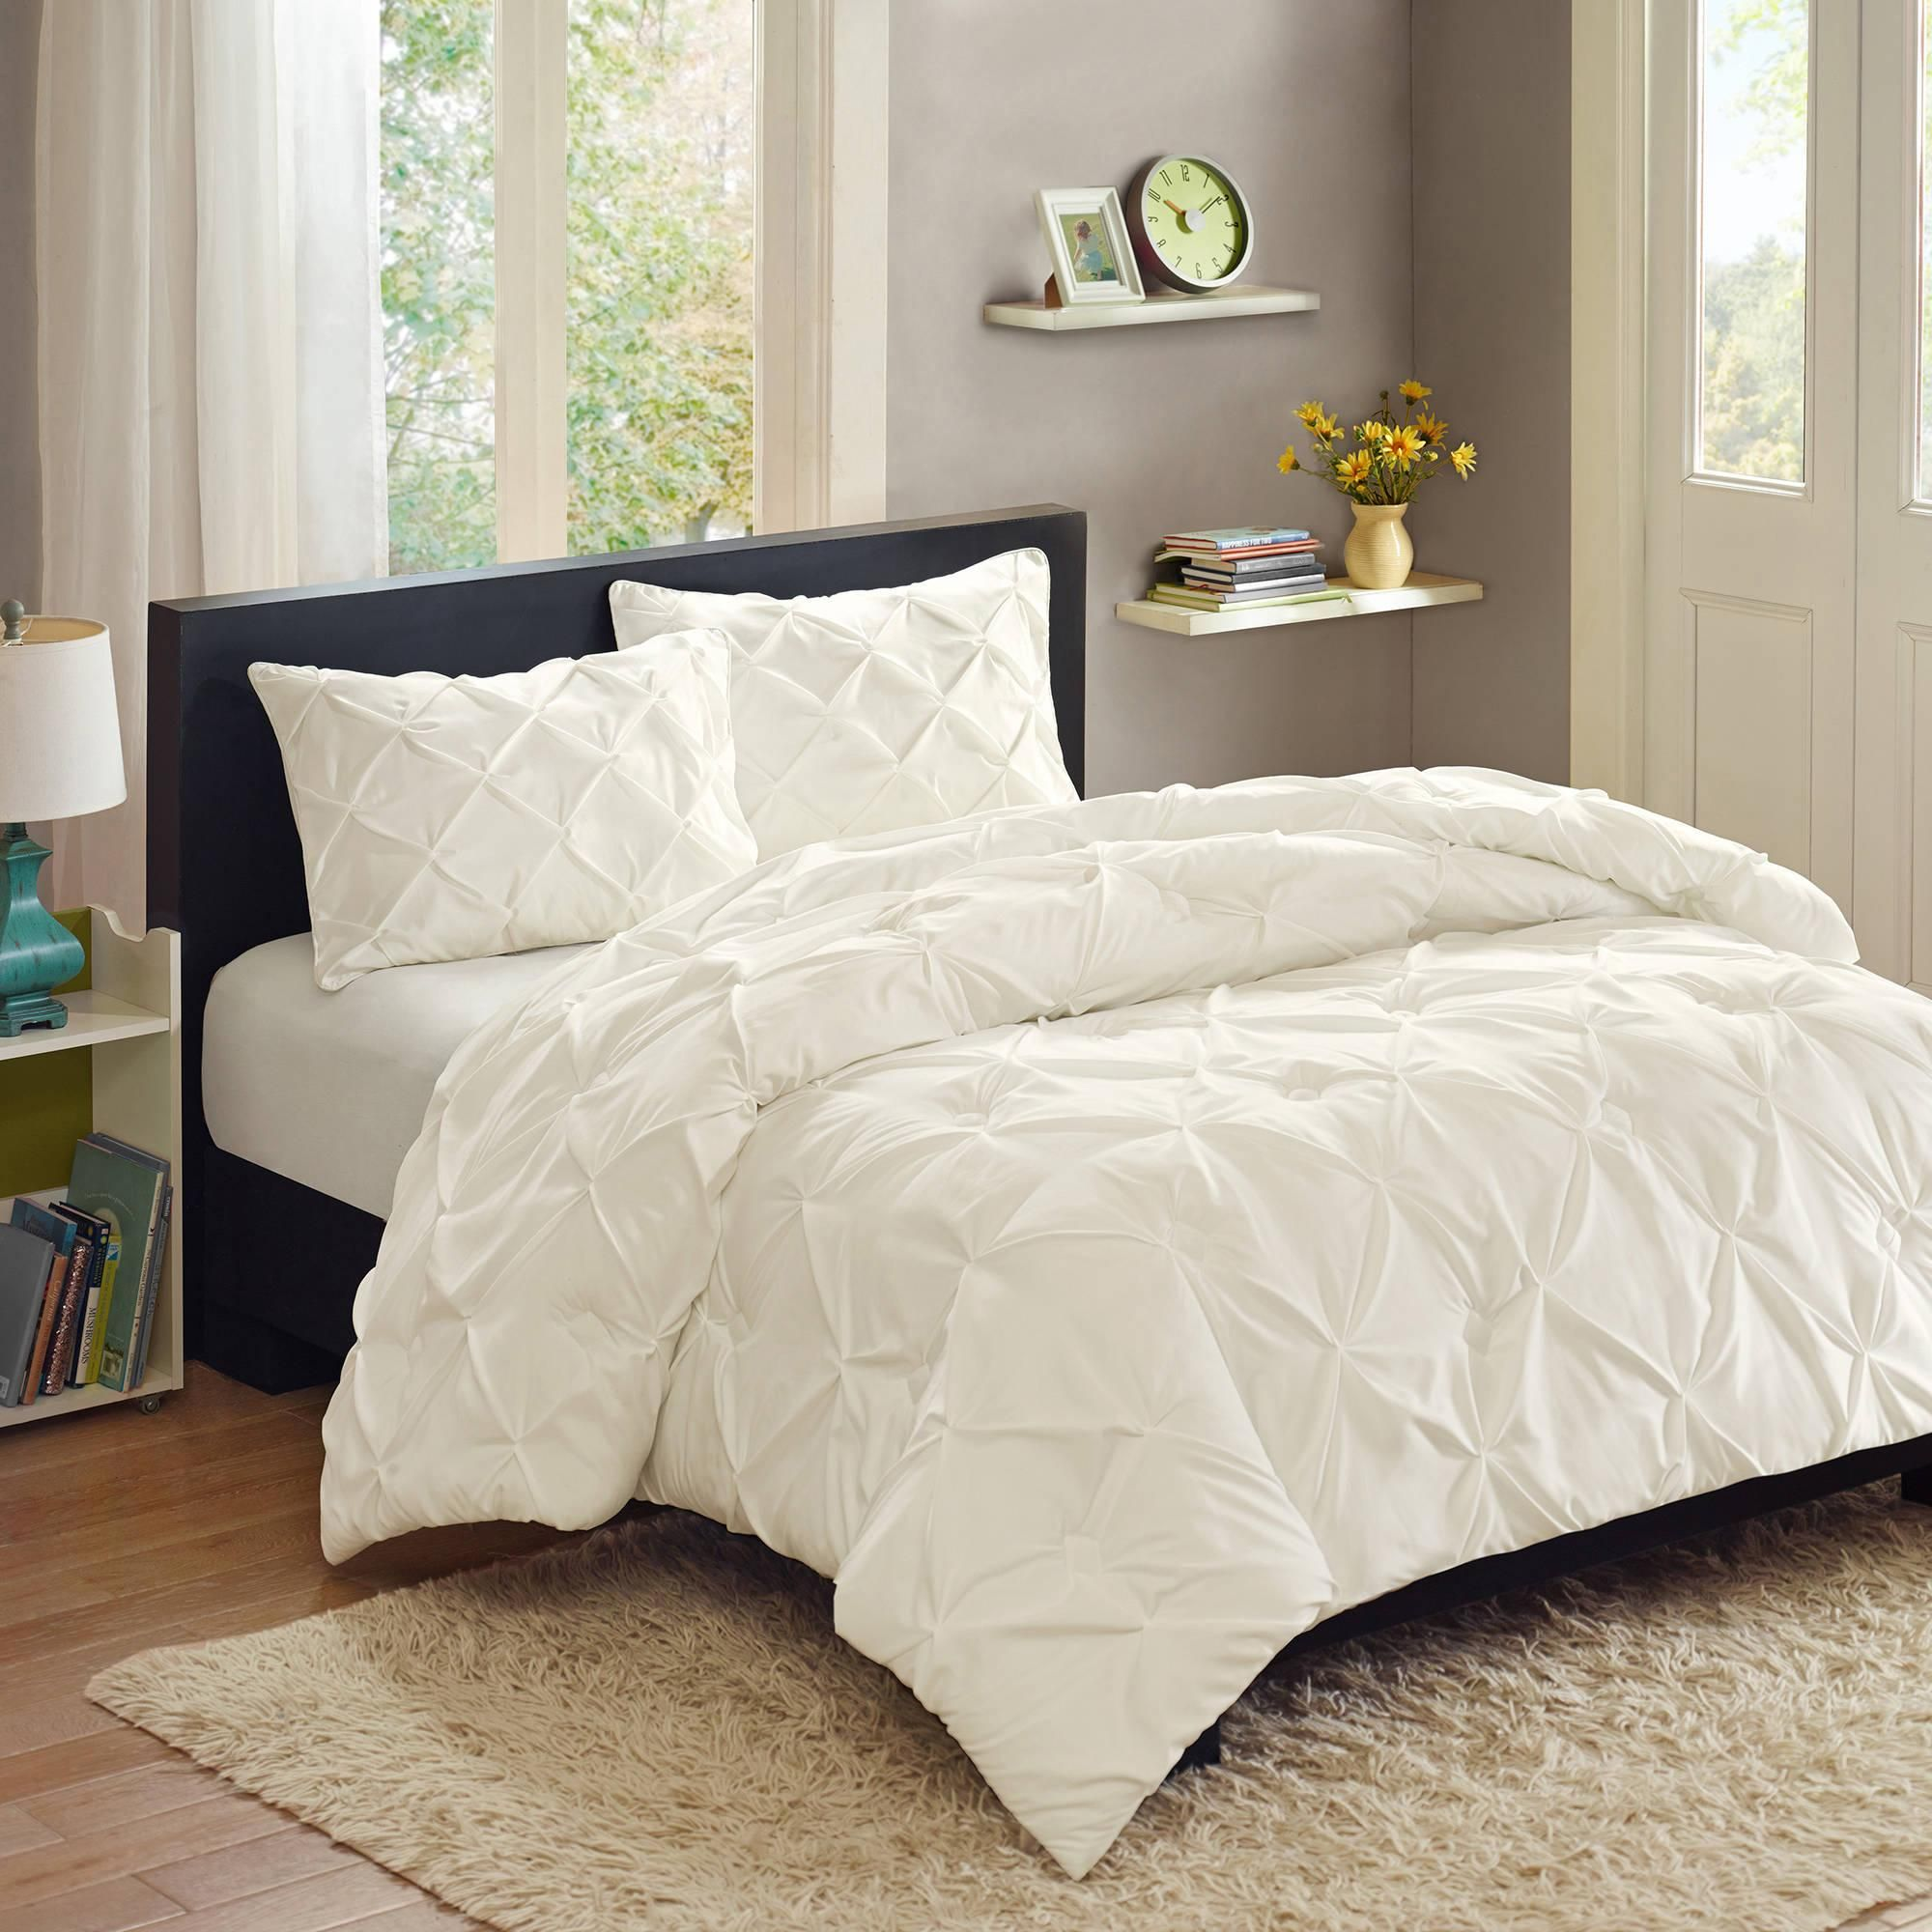 Better Homes And Gardens Pintuck Bedding Comforter Mini Set